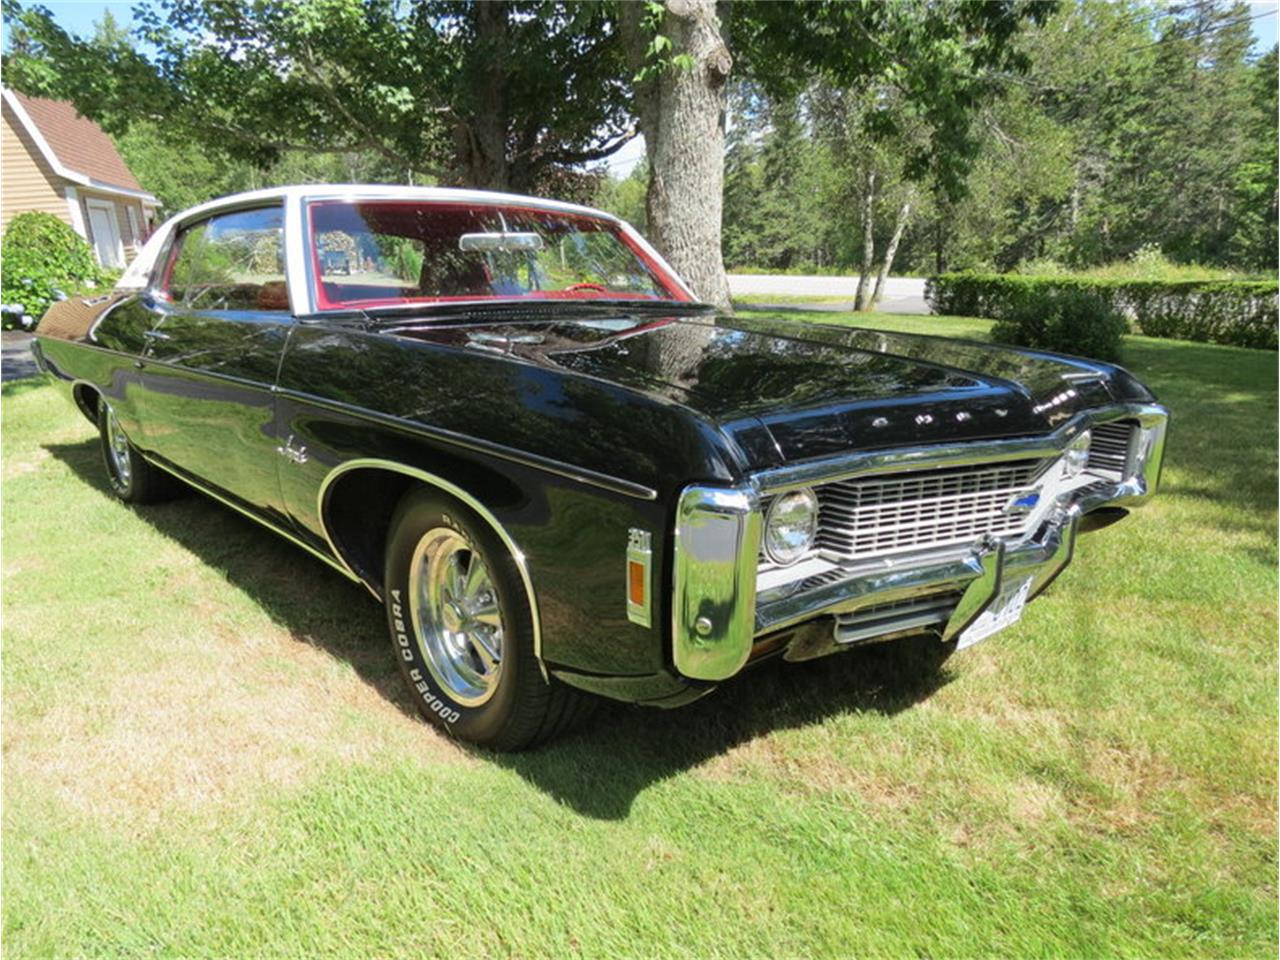 Large Picture of 1969 Chevrolet Impala located in Massachusetts Offered by Silverstone Motorcars - JALU